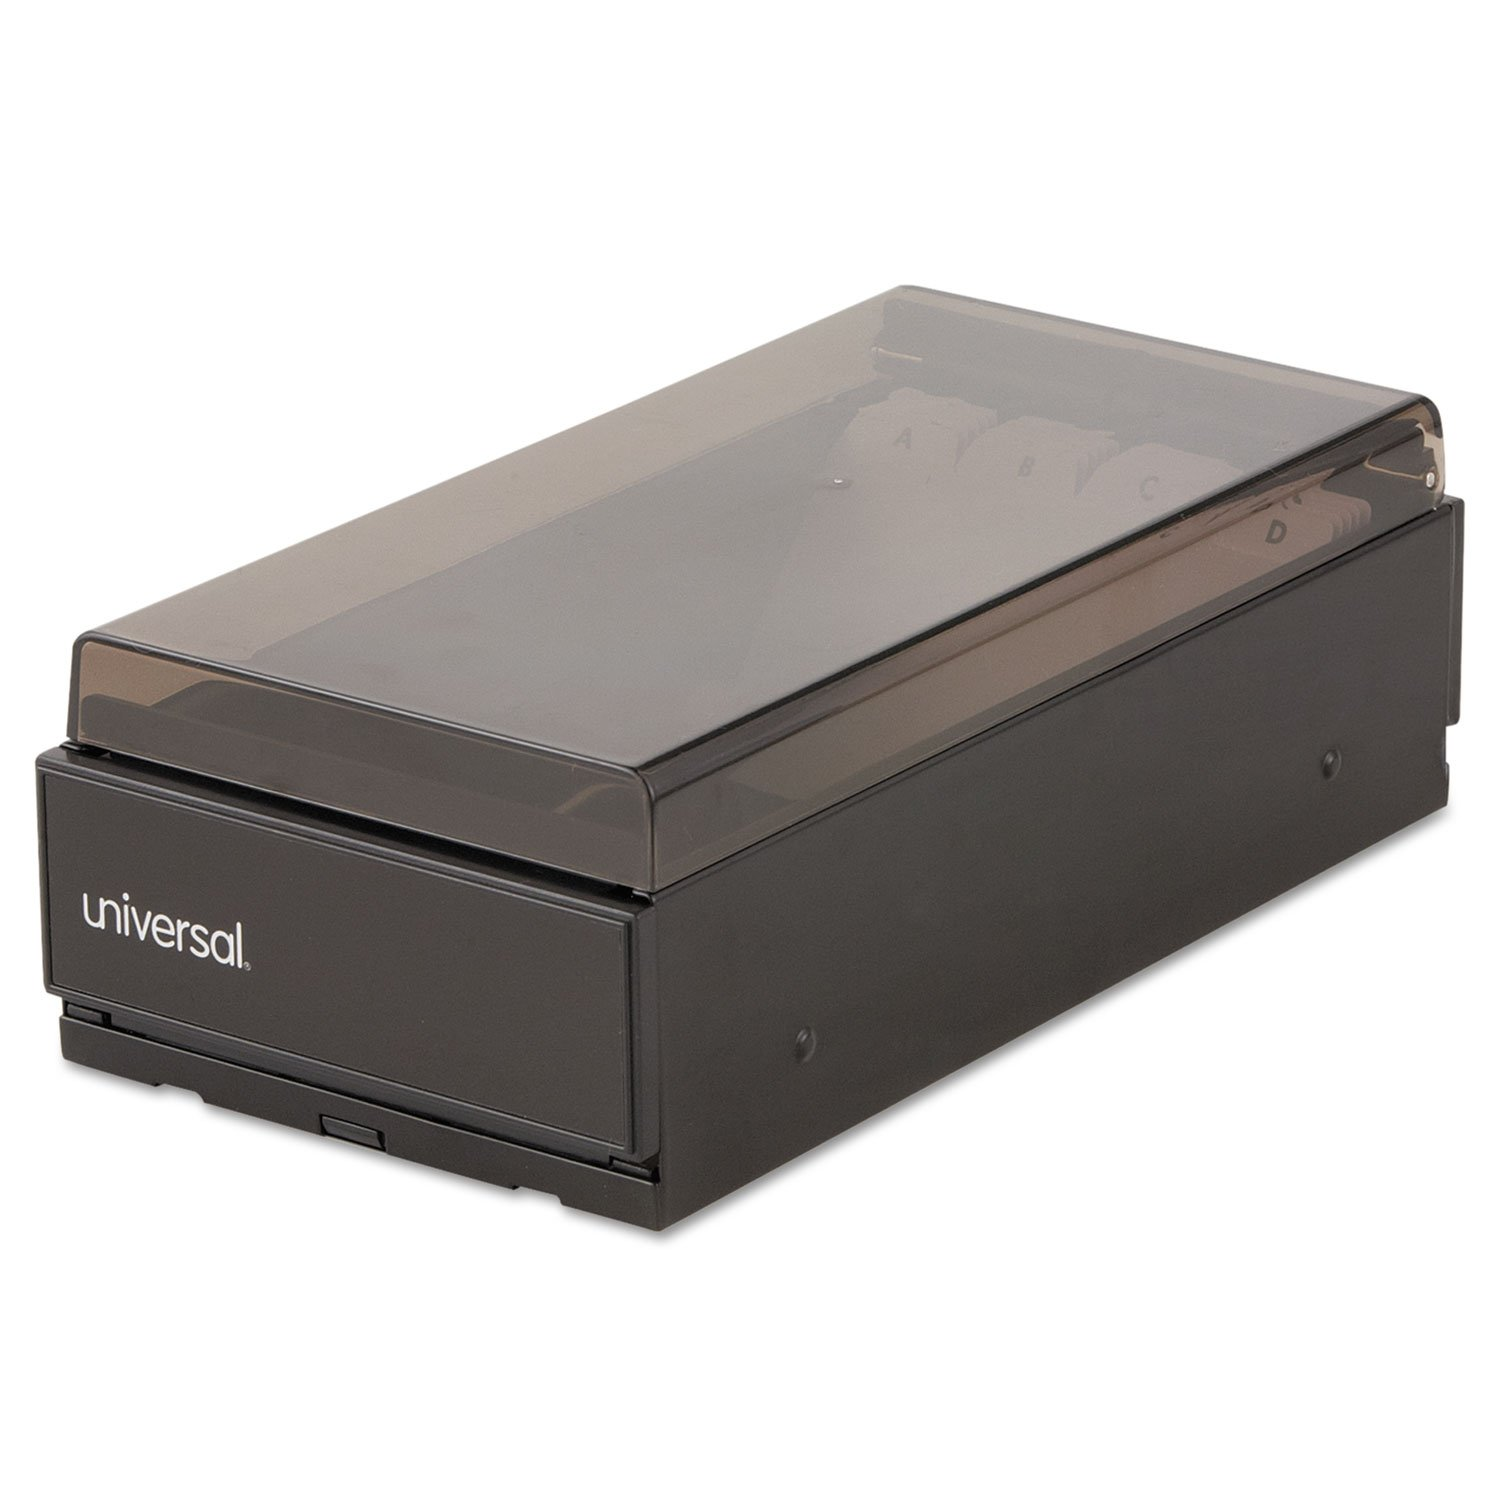 Universal 10601 Business Card File, Metal/Plastic, 4 1/4 x 8 1/4 x 2 1/2, Black